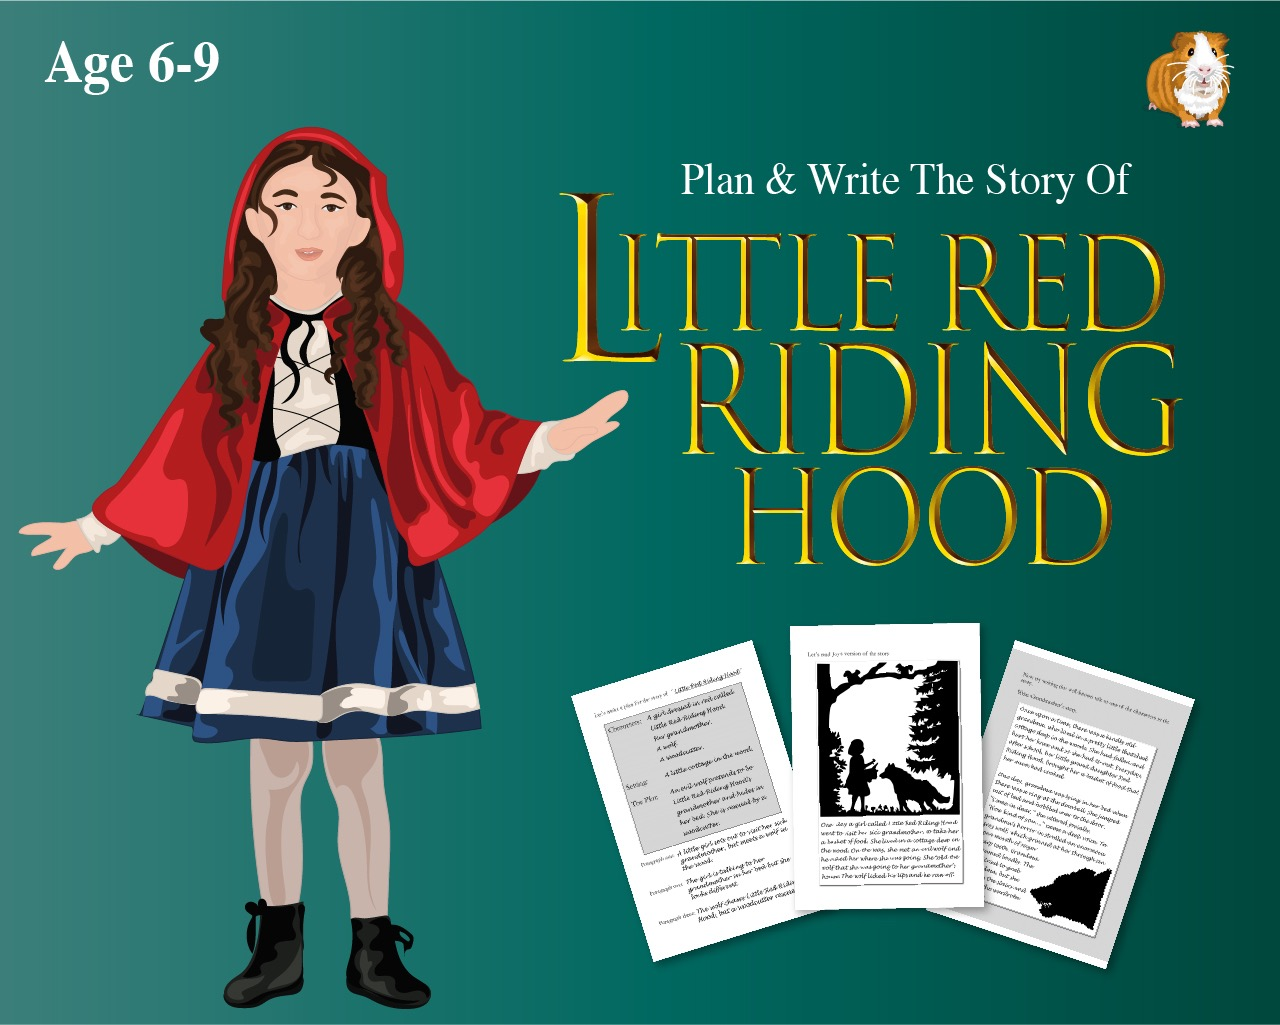 Plan And Write The Story Of 'Little Red Riding Hood'  (6-9 years)